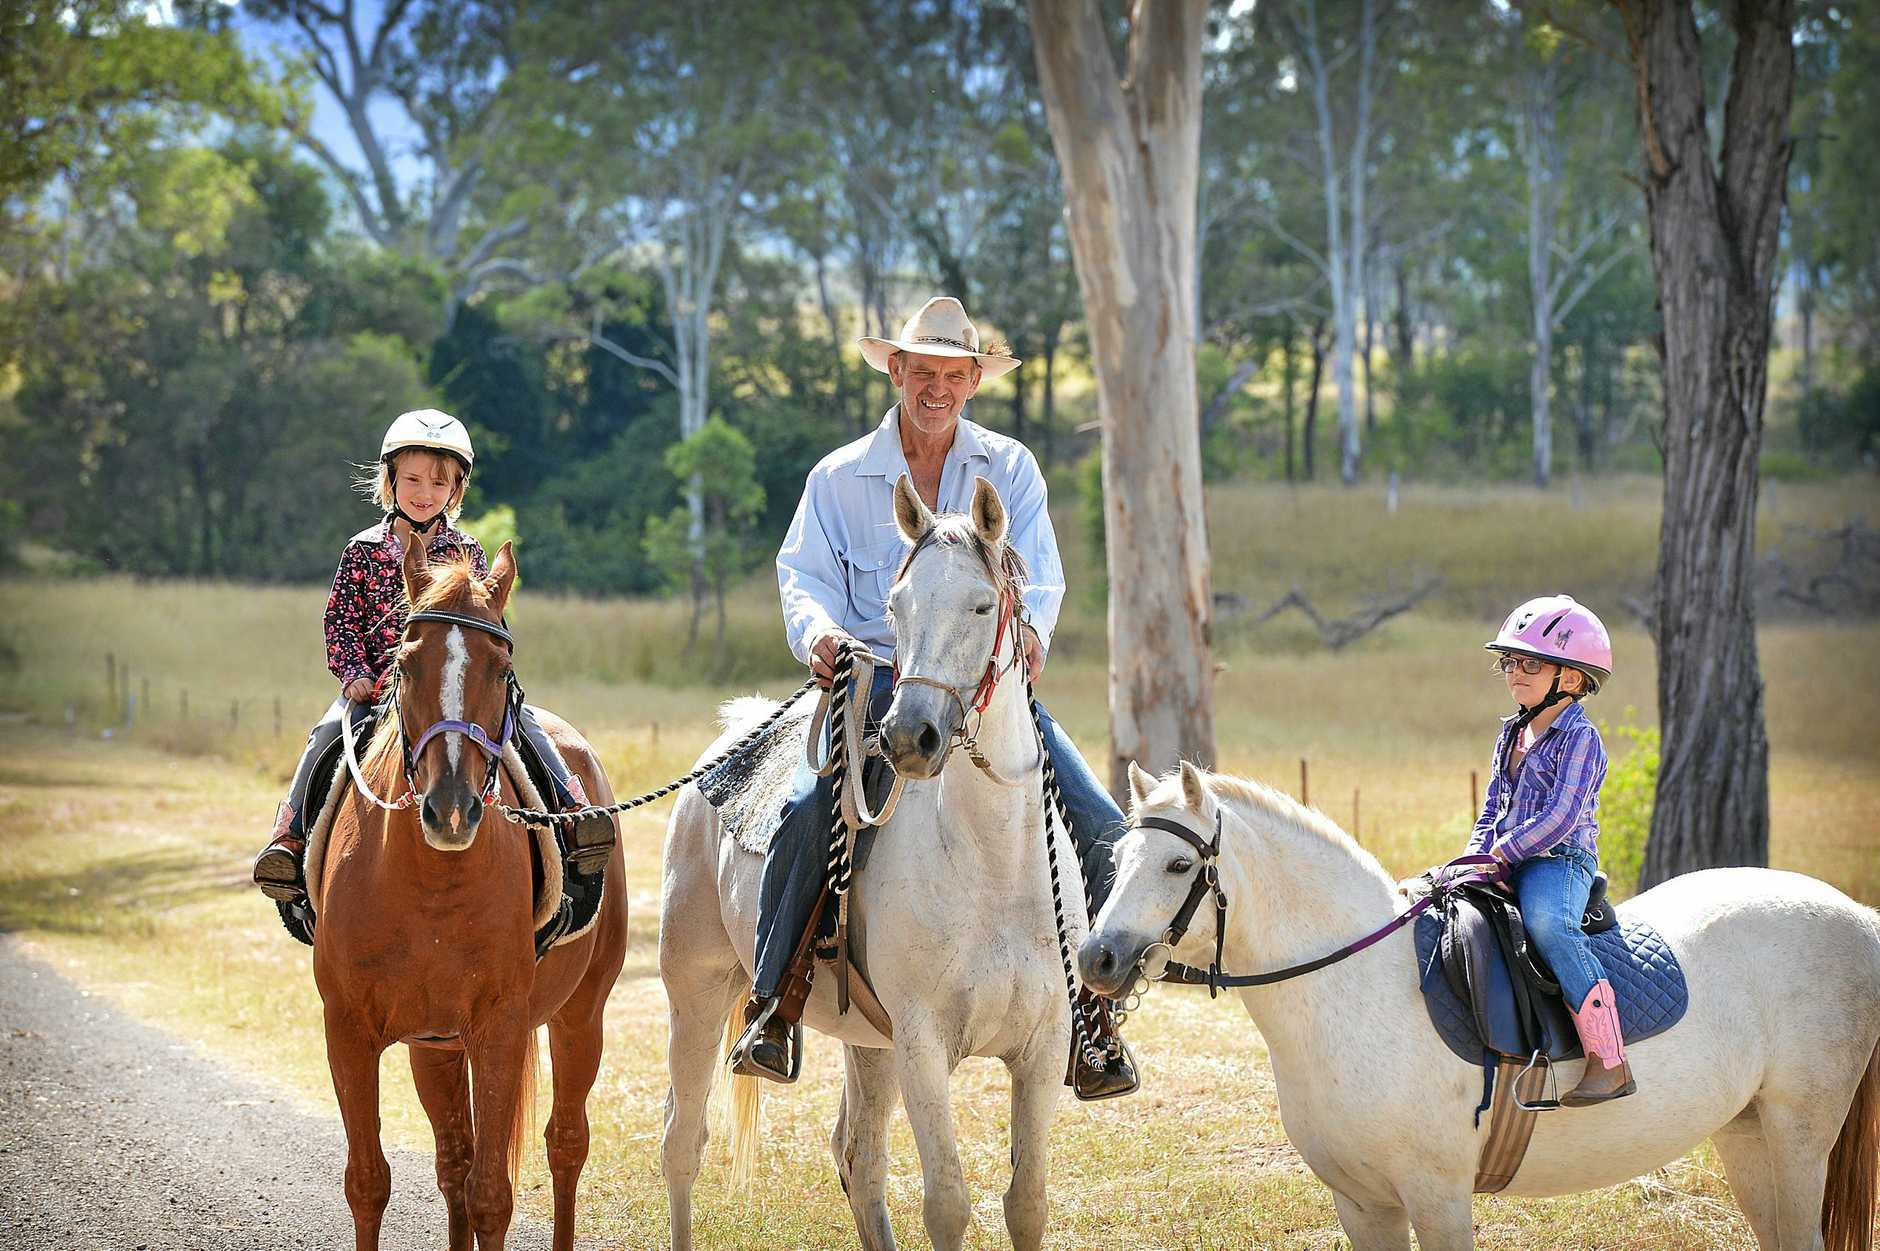 Vern Berry on Rosana, joined by Morgan Berry (left) riding Tempo, and Rahni Wason (right) on Selina prepare for a Kilkivan horse ride.